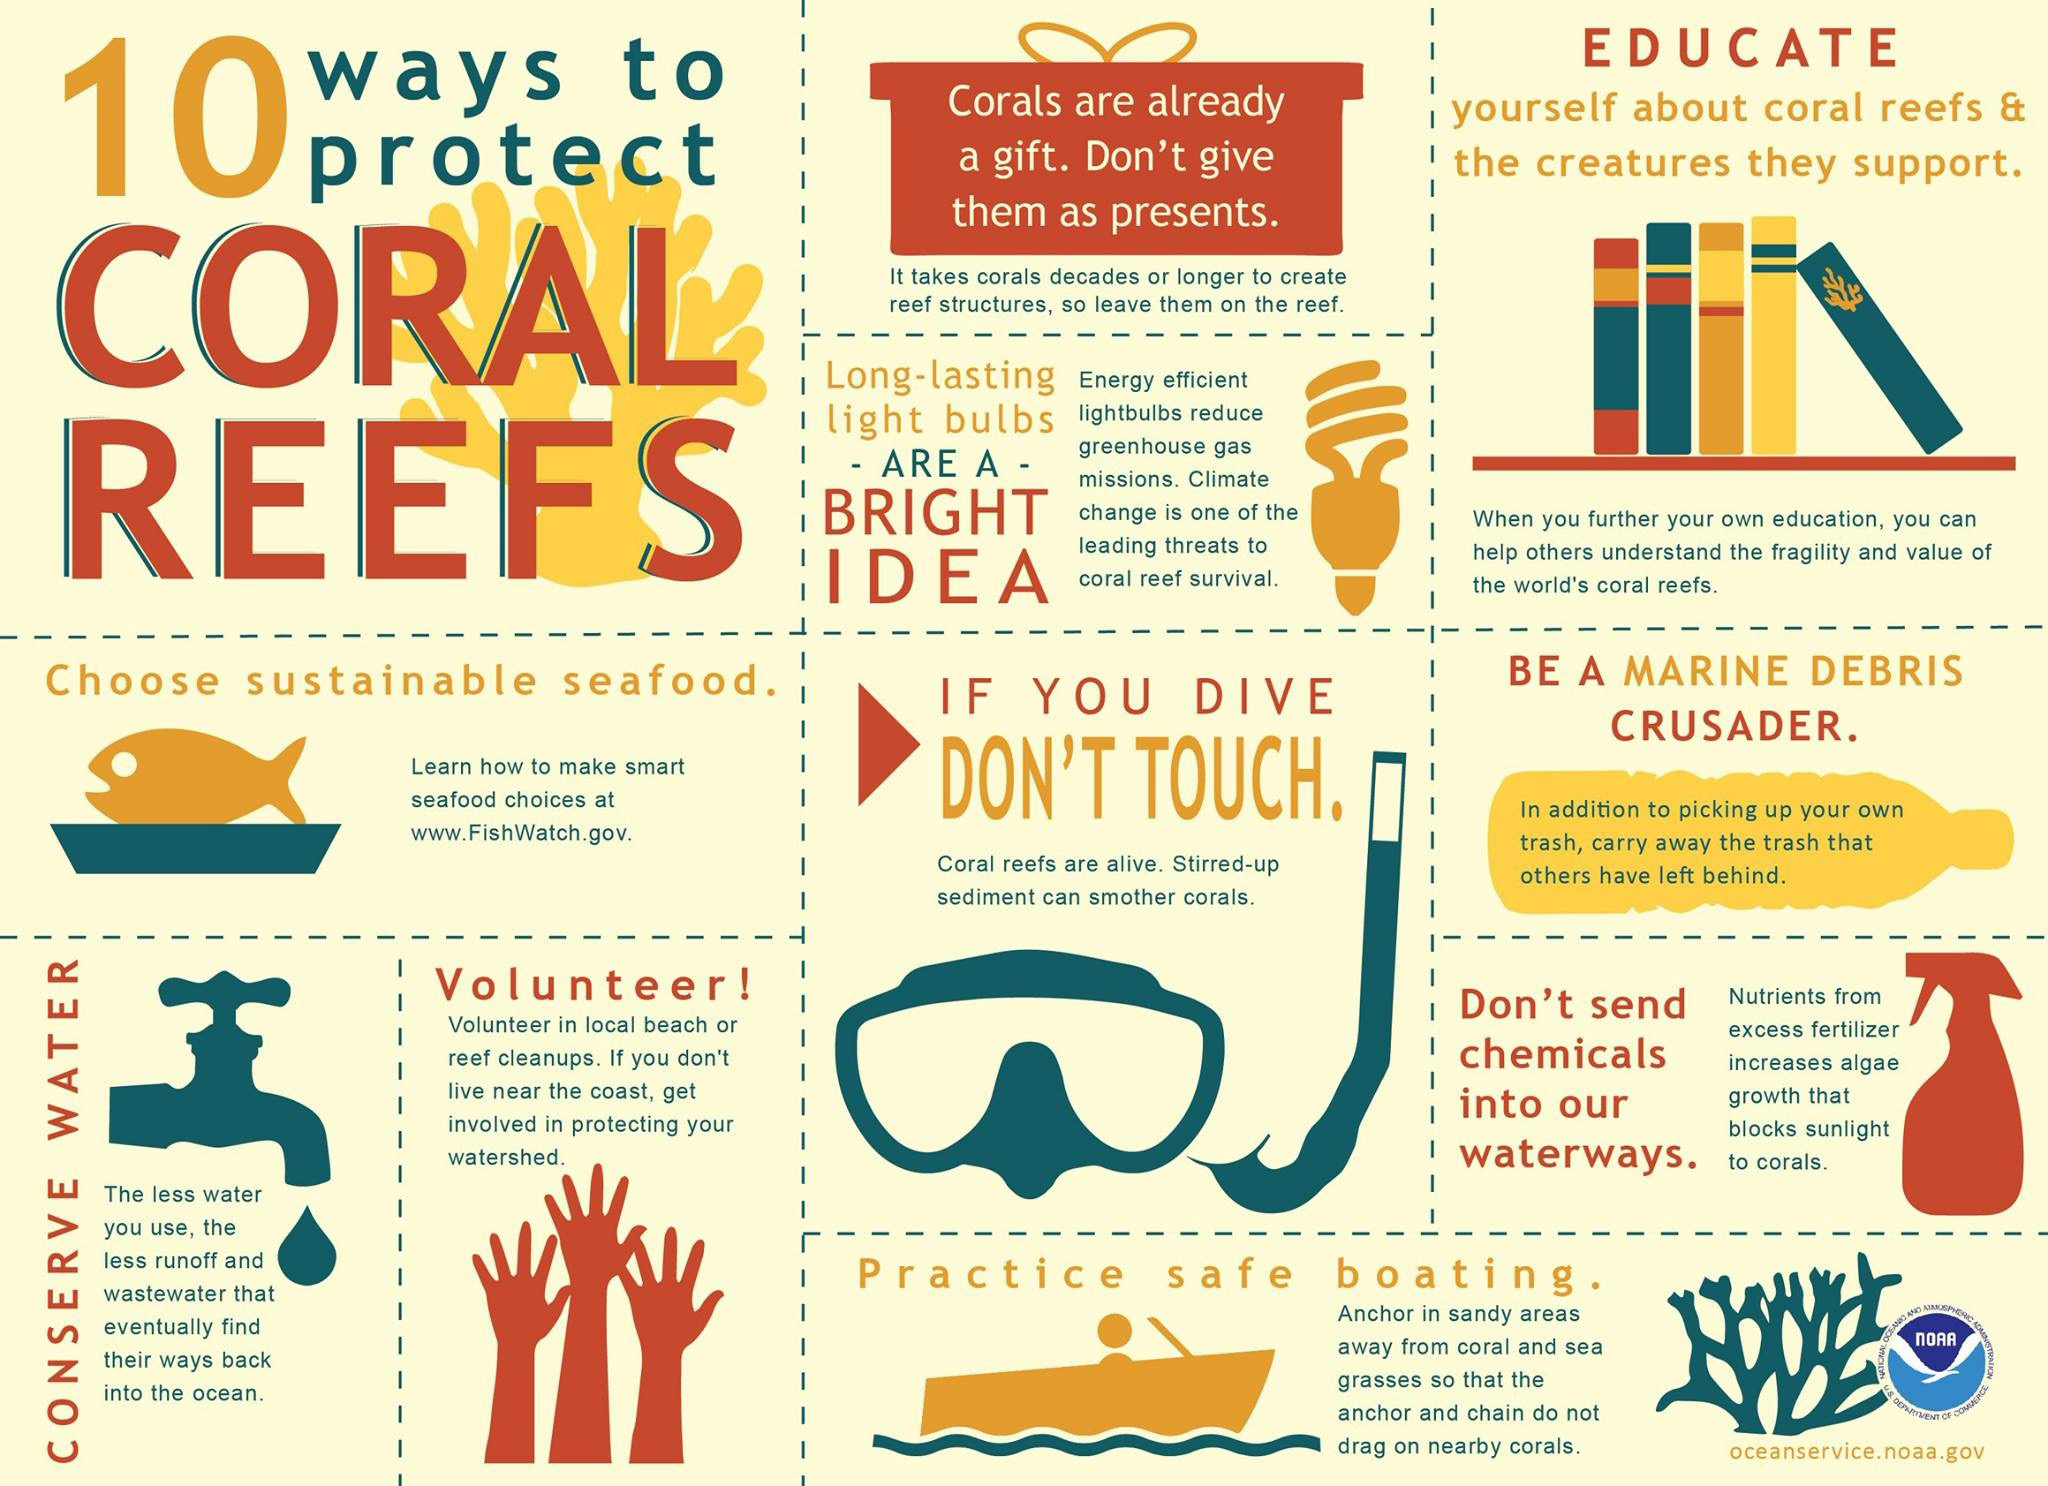 Protect our coral reefs